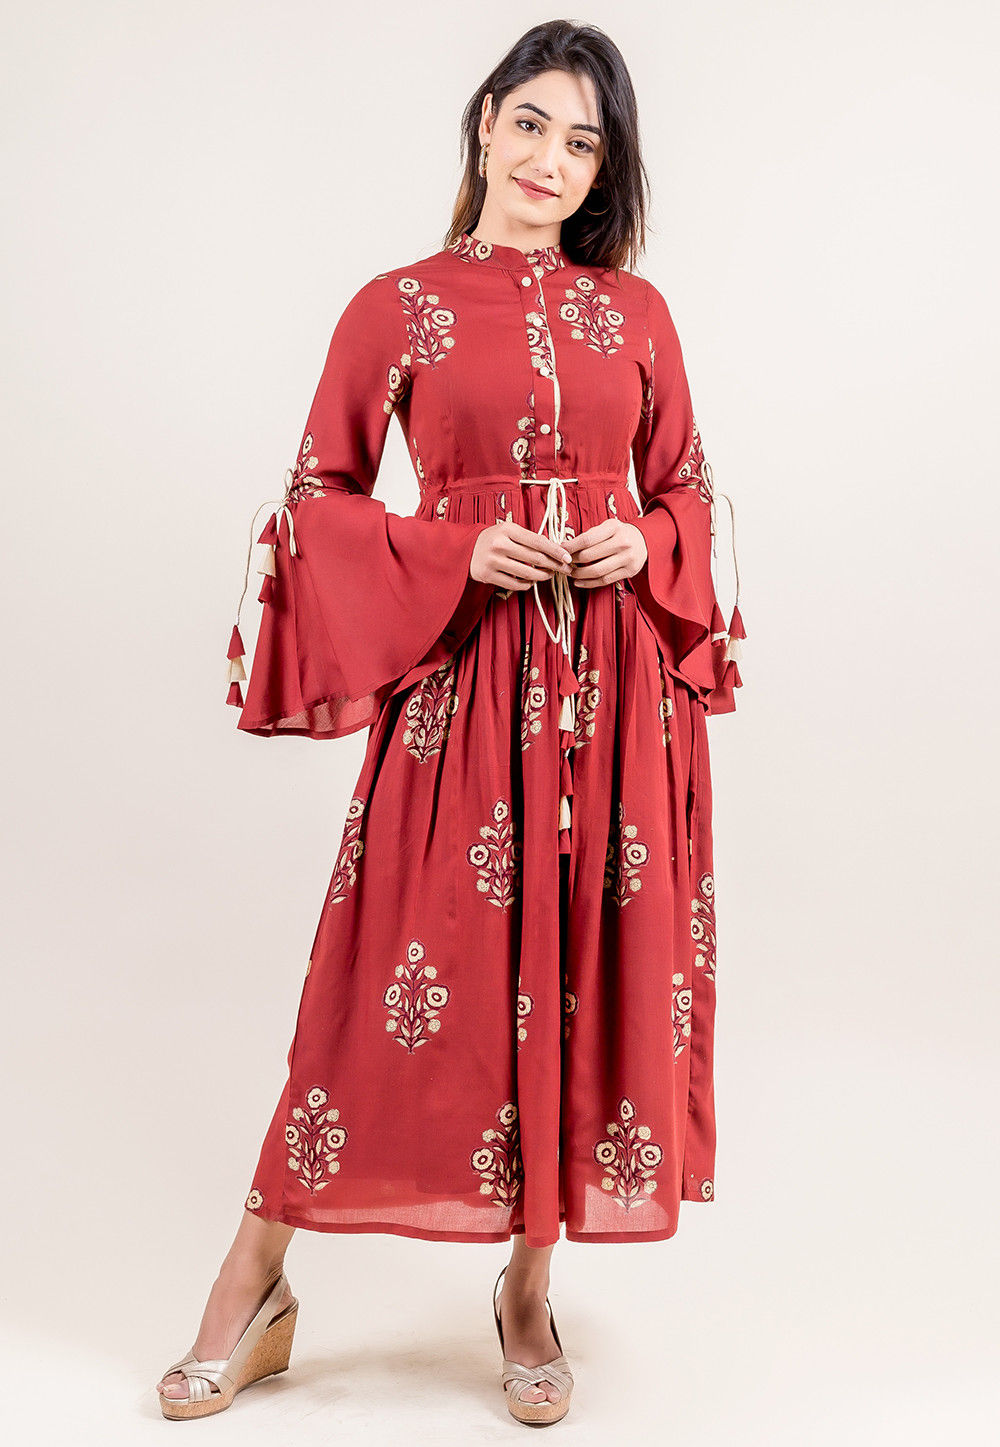 Printed Rayon Cotton Dress In Red Tqm190